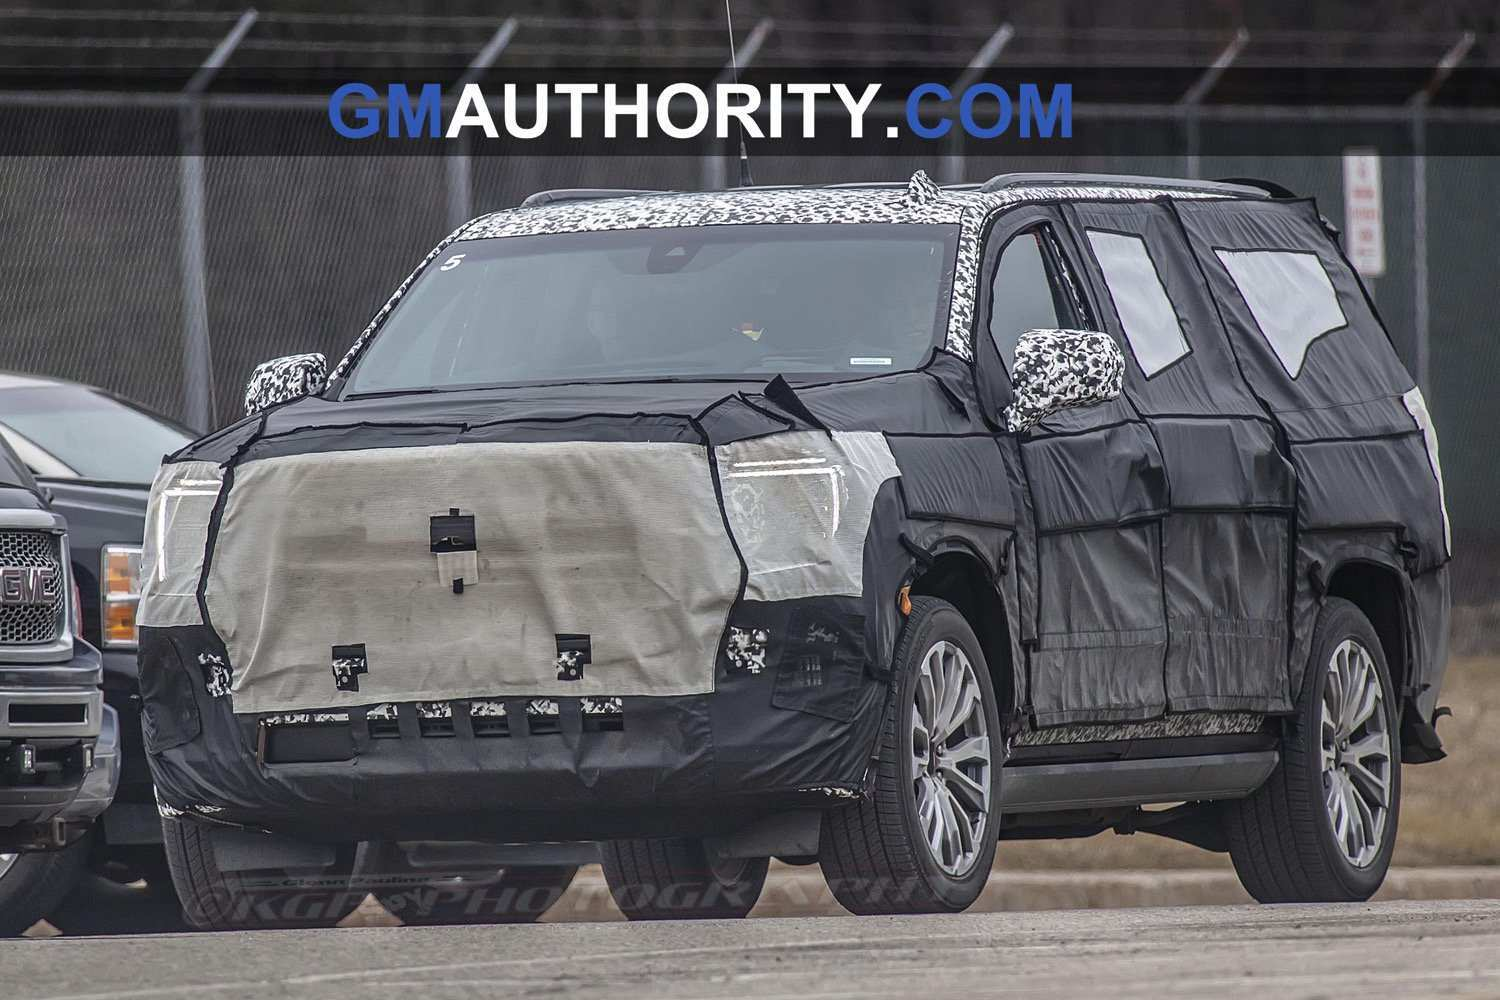 81 Concept of When Will 2020 Gmc Yukon Come Out Redesign for When Will 2020 Gmc Yukon Come Out